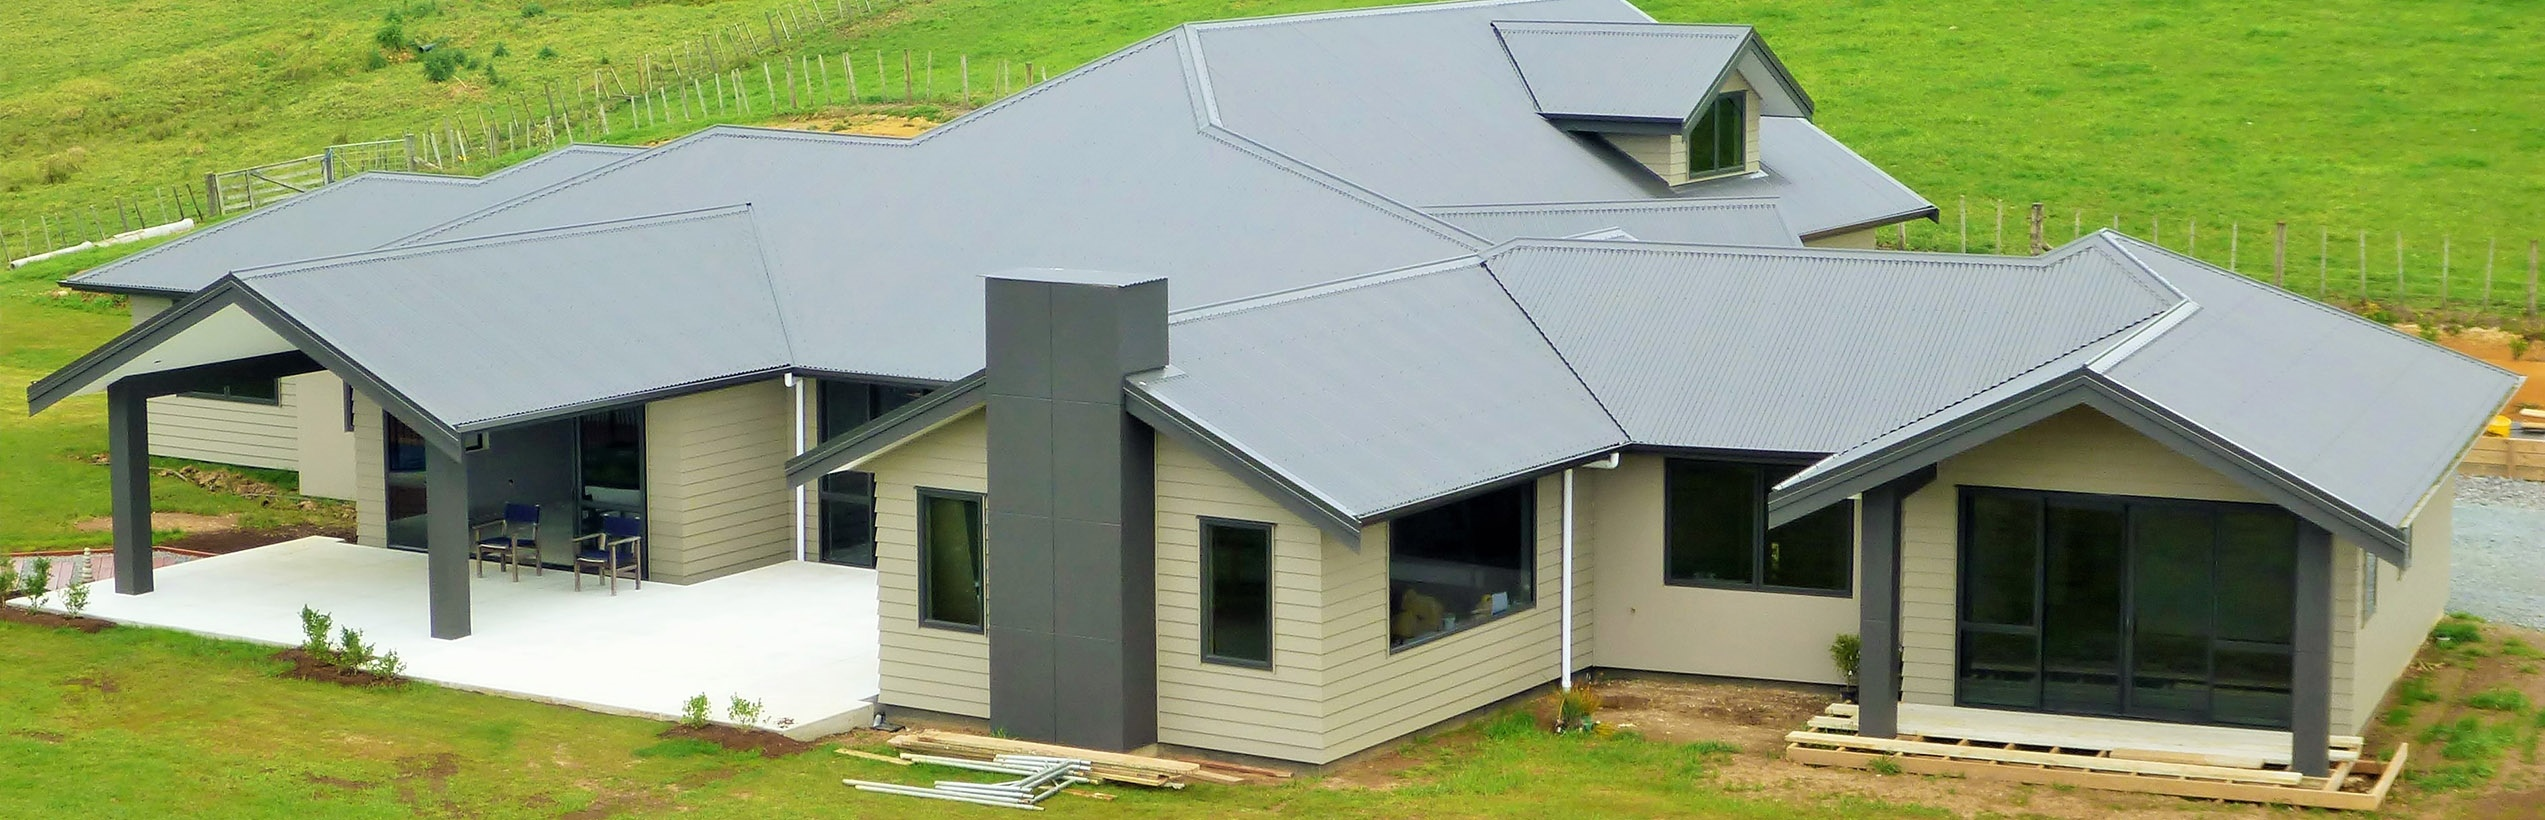 Apex Roof N Clad Professional Roofing In Whangarei Northland